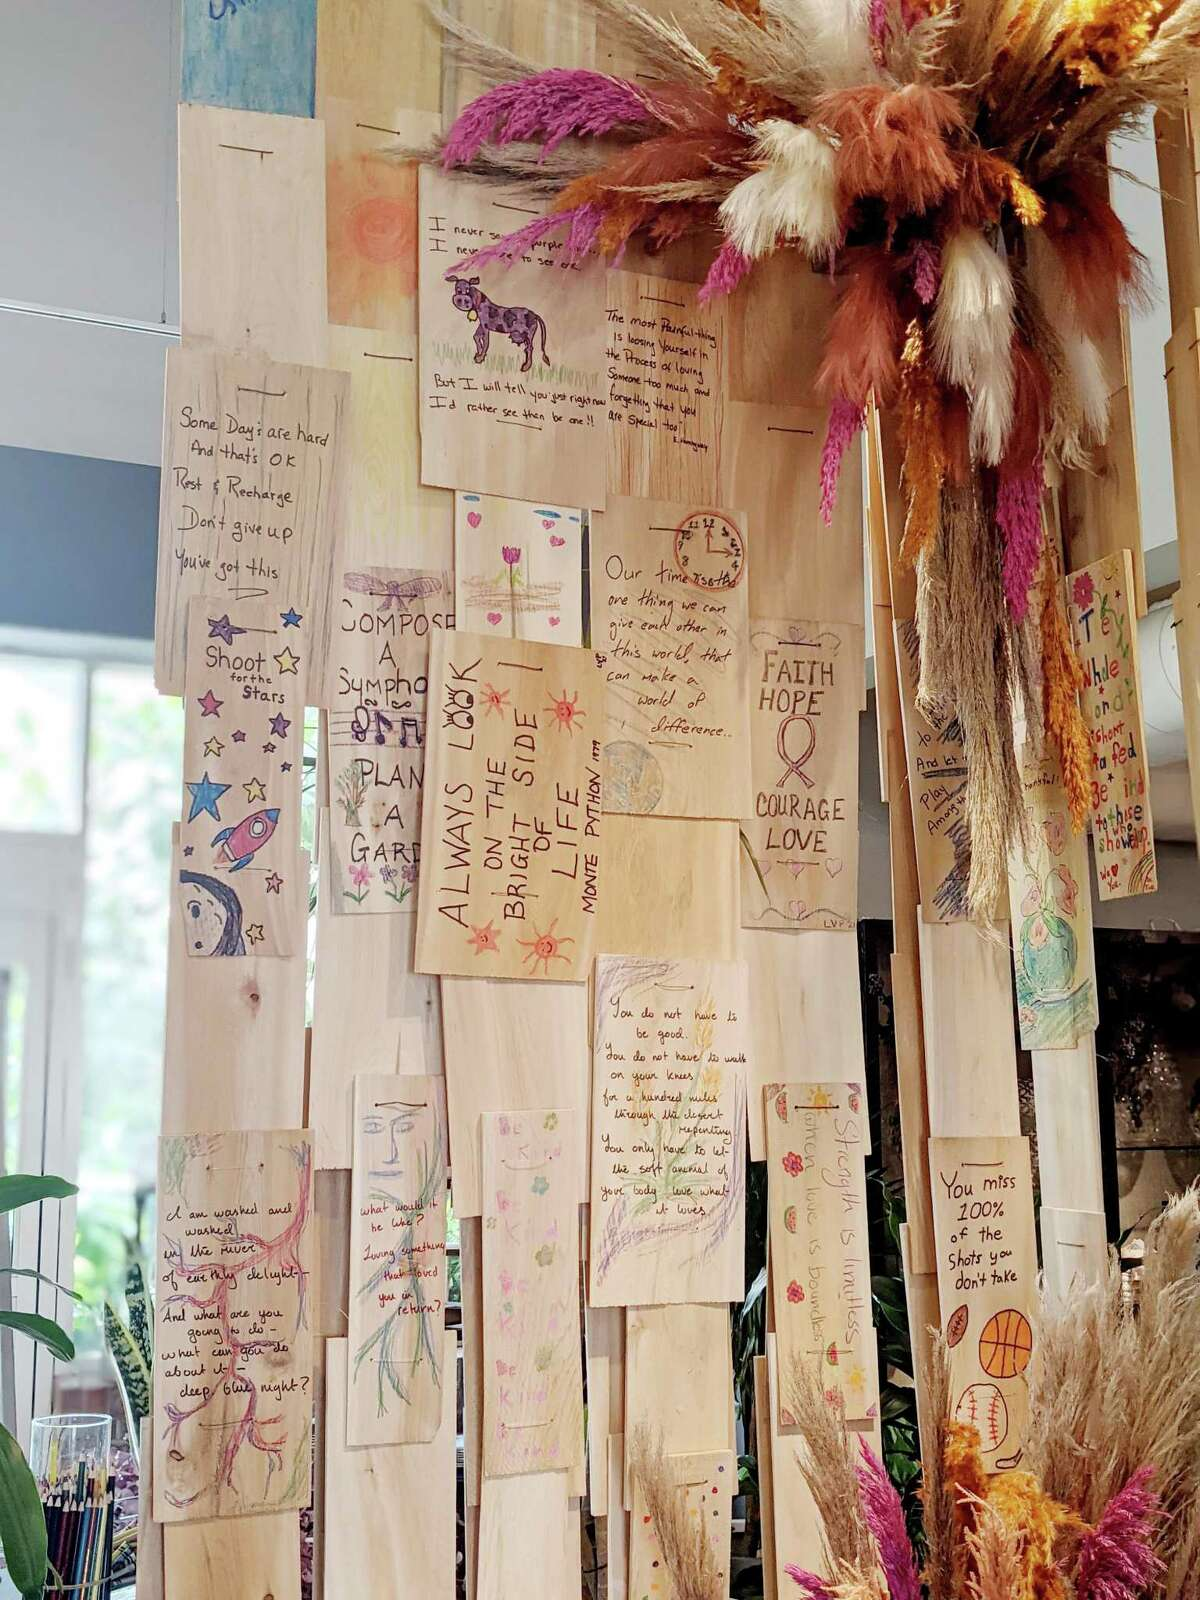 Nielsen's Florist & Garden Center's new initiative lets people share messages, ideas and inspirations through artwork, poetry and words aimed at reaching out to others.